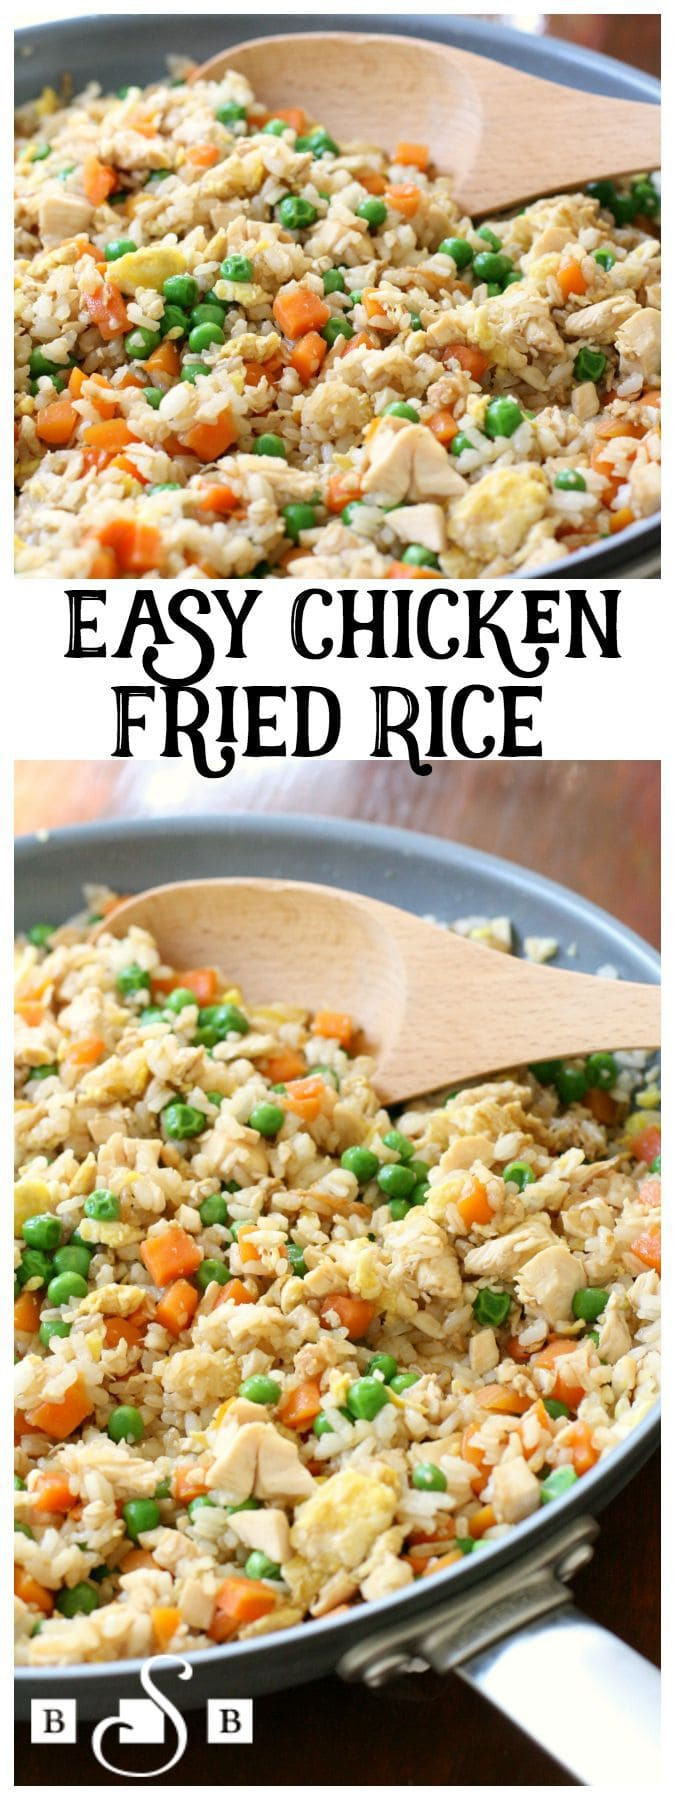 Easy Pork Fried Rice  EASY CHICKEN FRIED RICE Butter with a Side of Bread